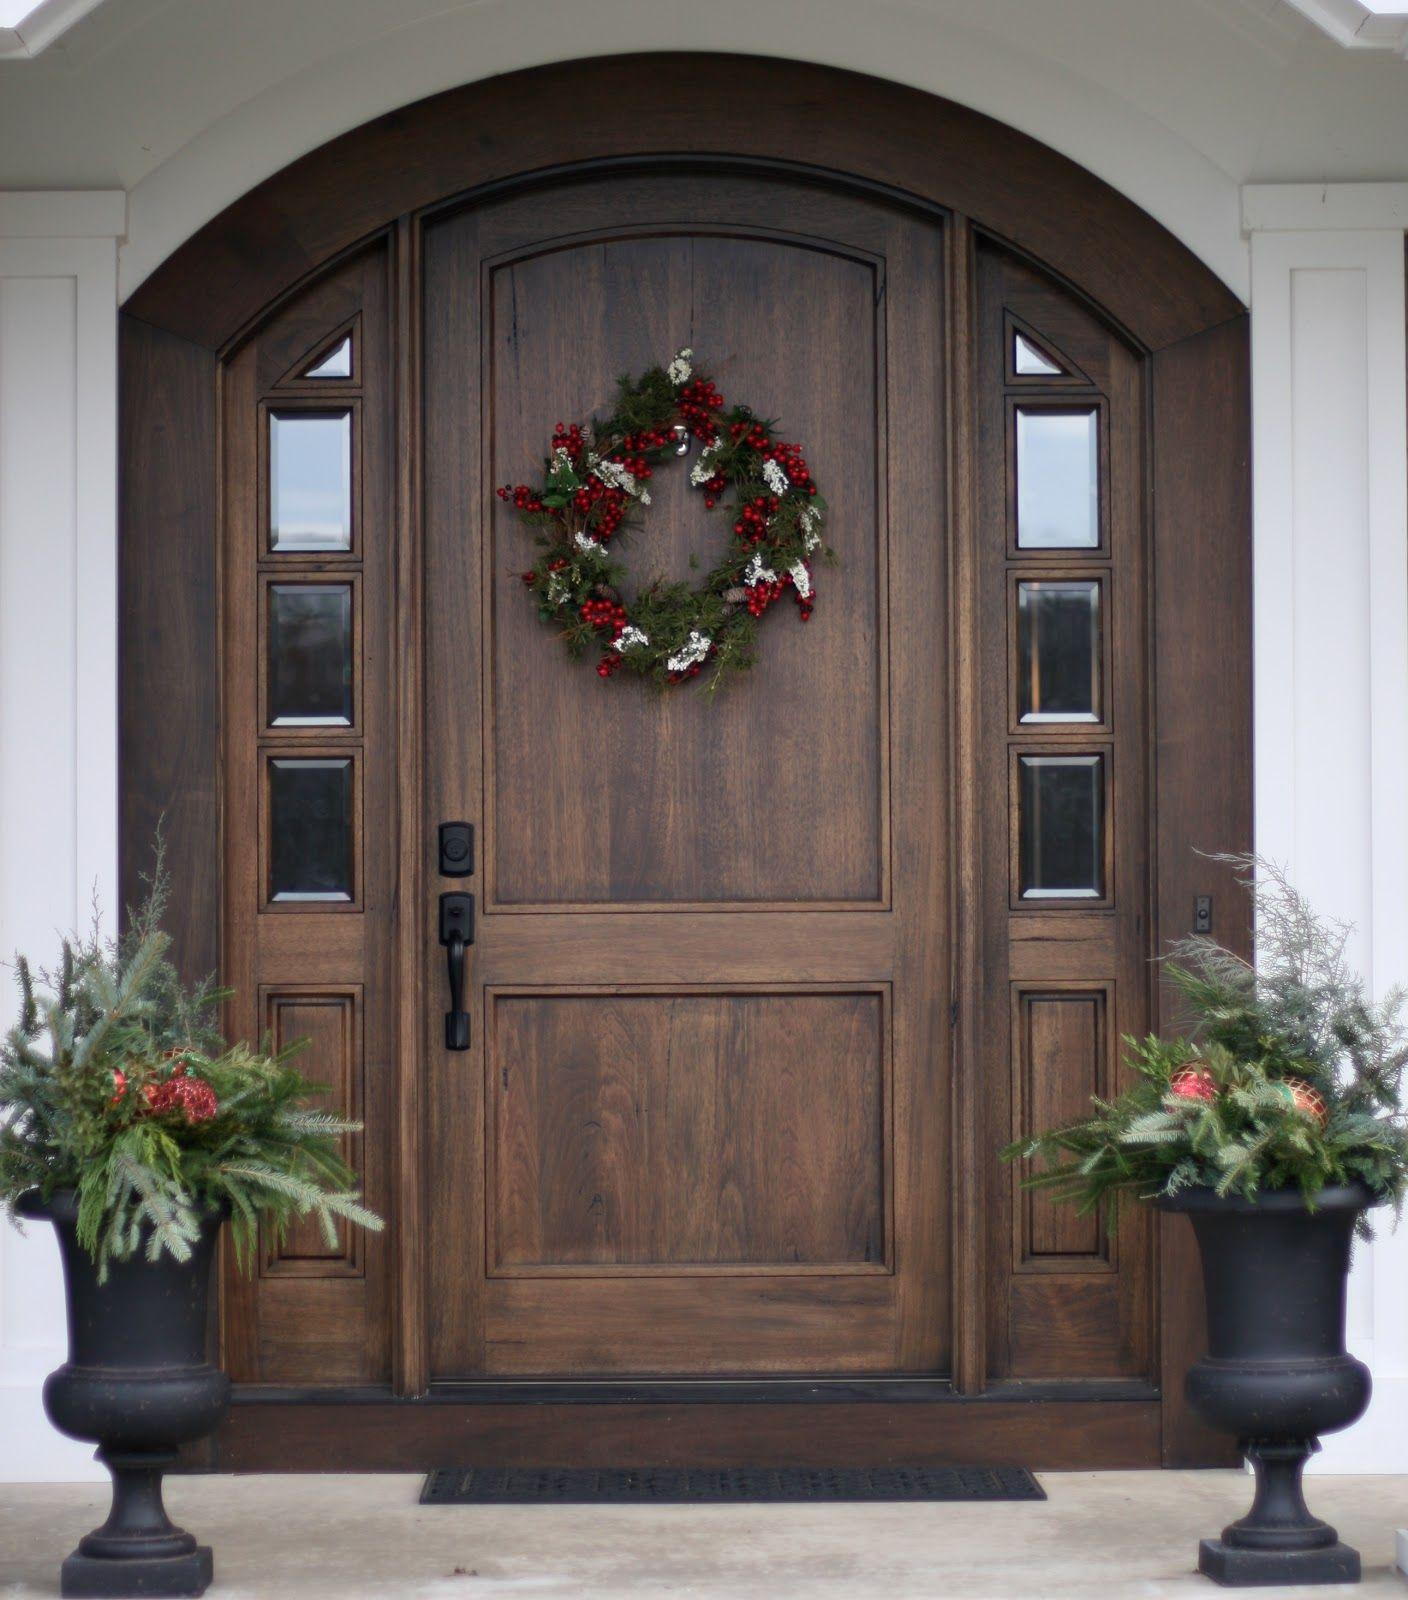 Front door. One day I will have a house that will allow me